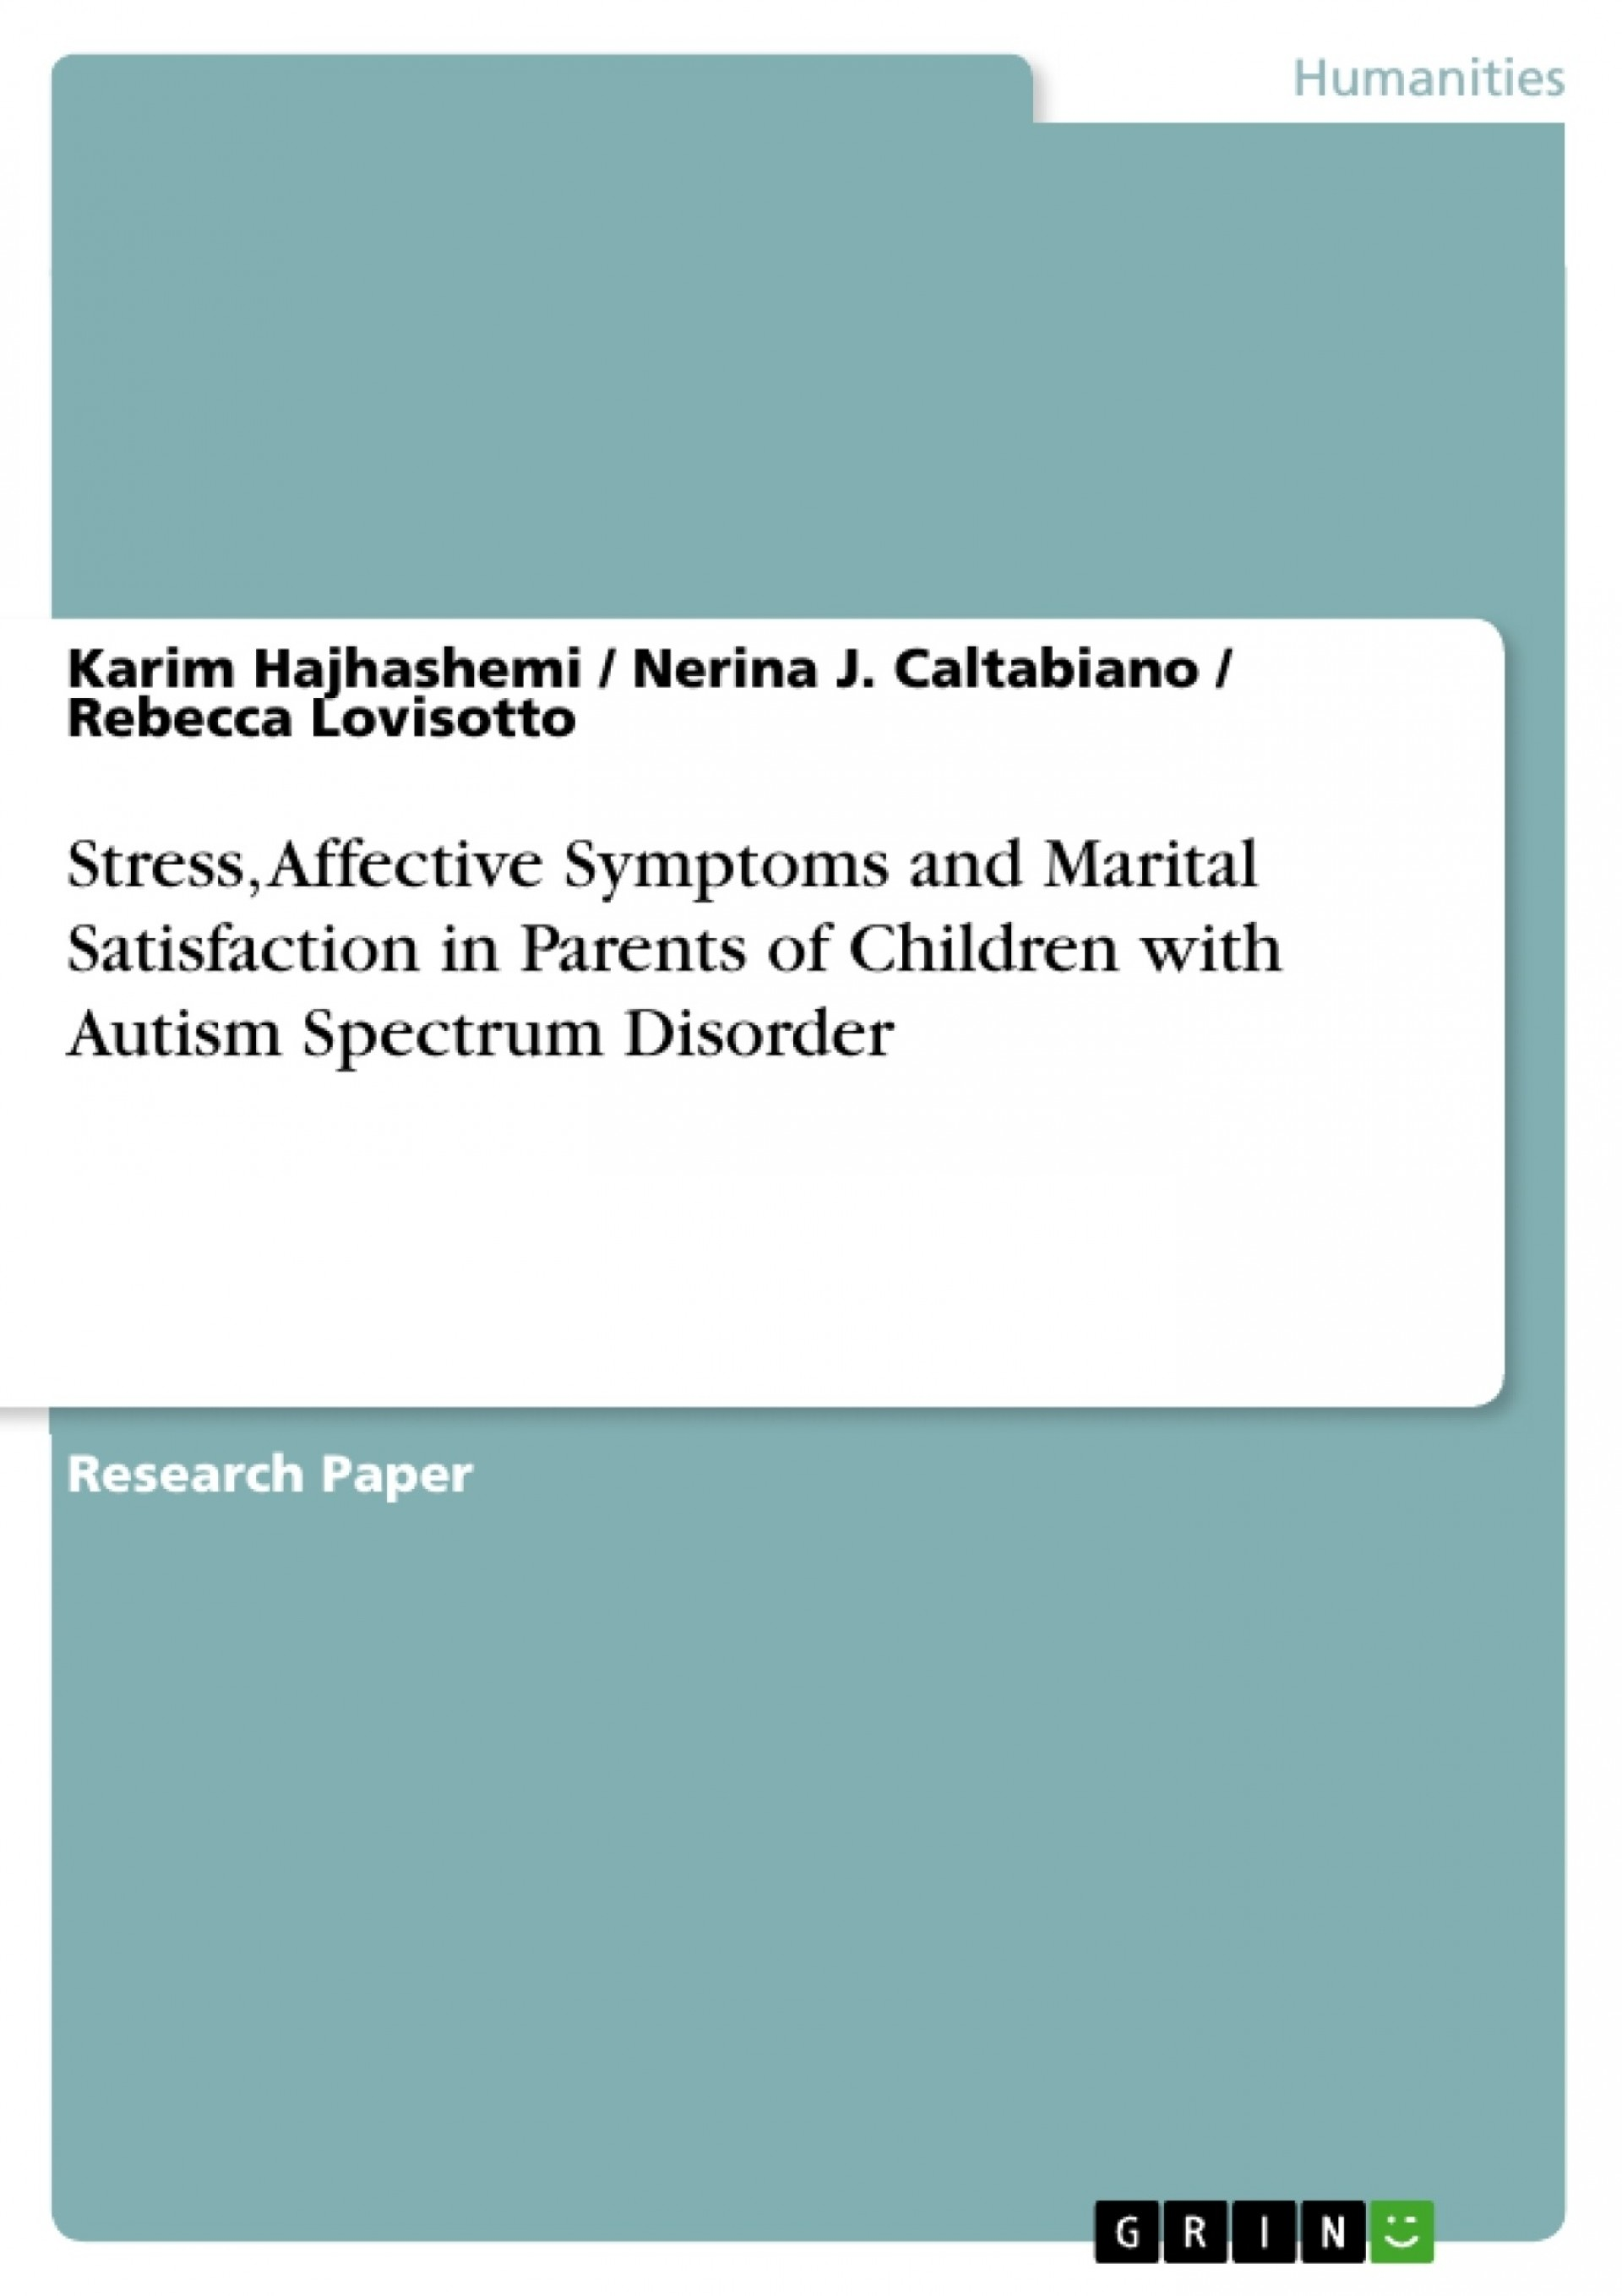 009 313796 0 Autism Spectrum Disorder Researchs Awesome Research Papers Paper Topics 1920